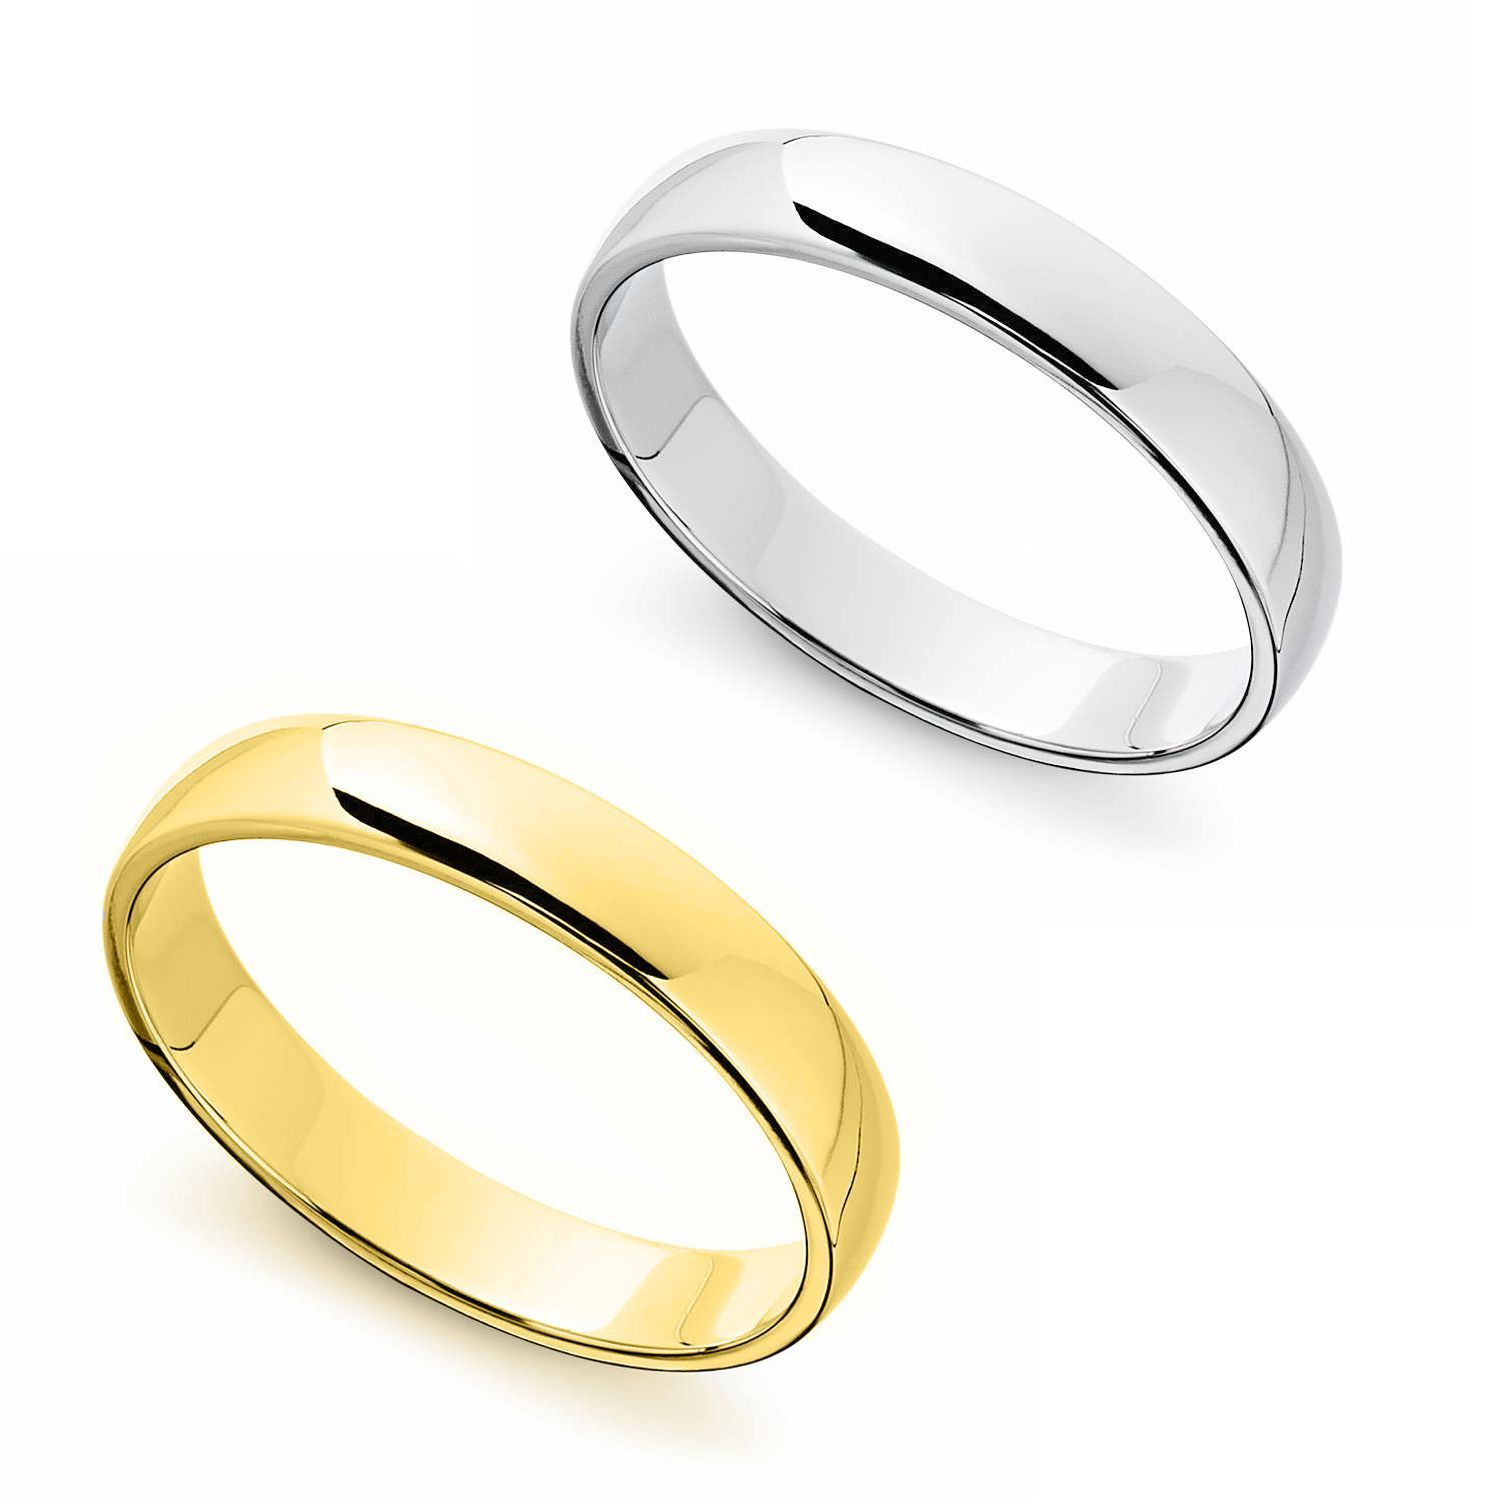 14k yellow or white gold standard fit men's and women's 4